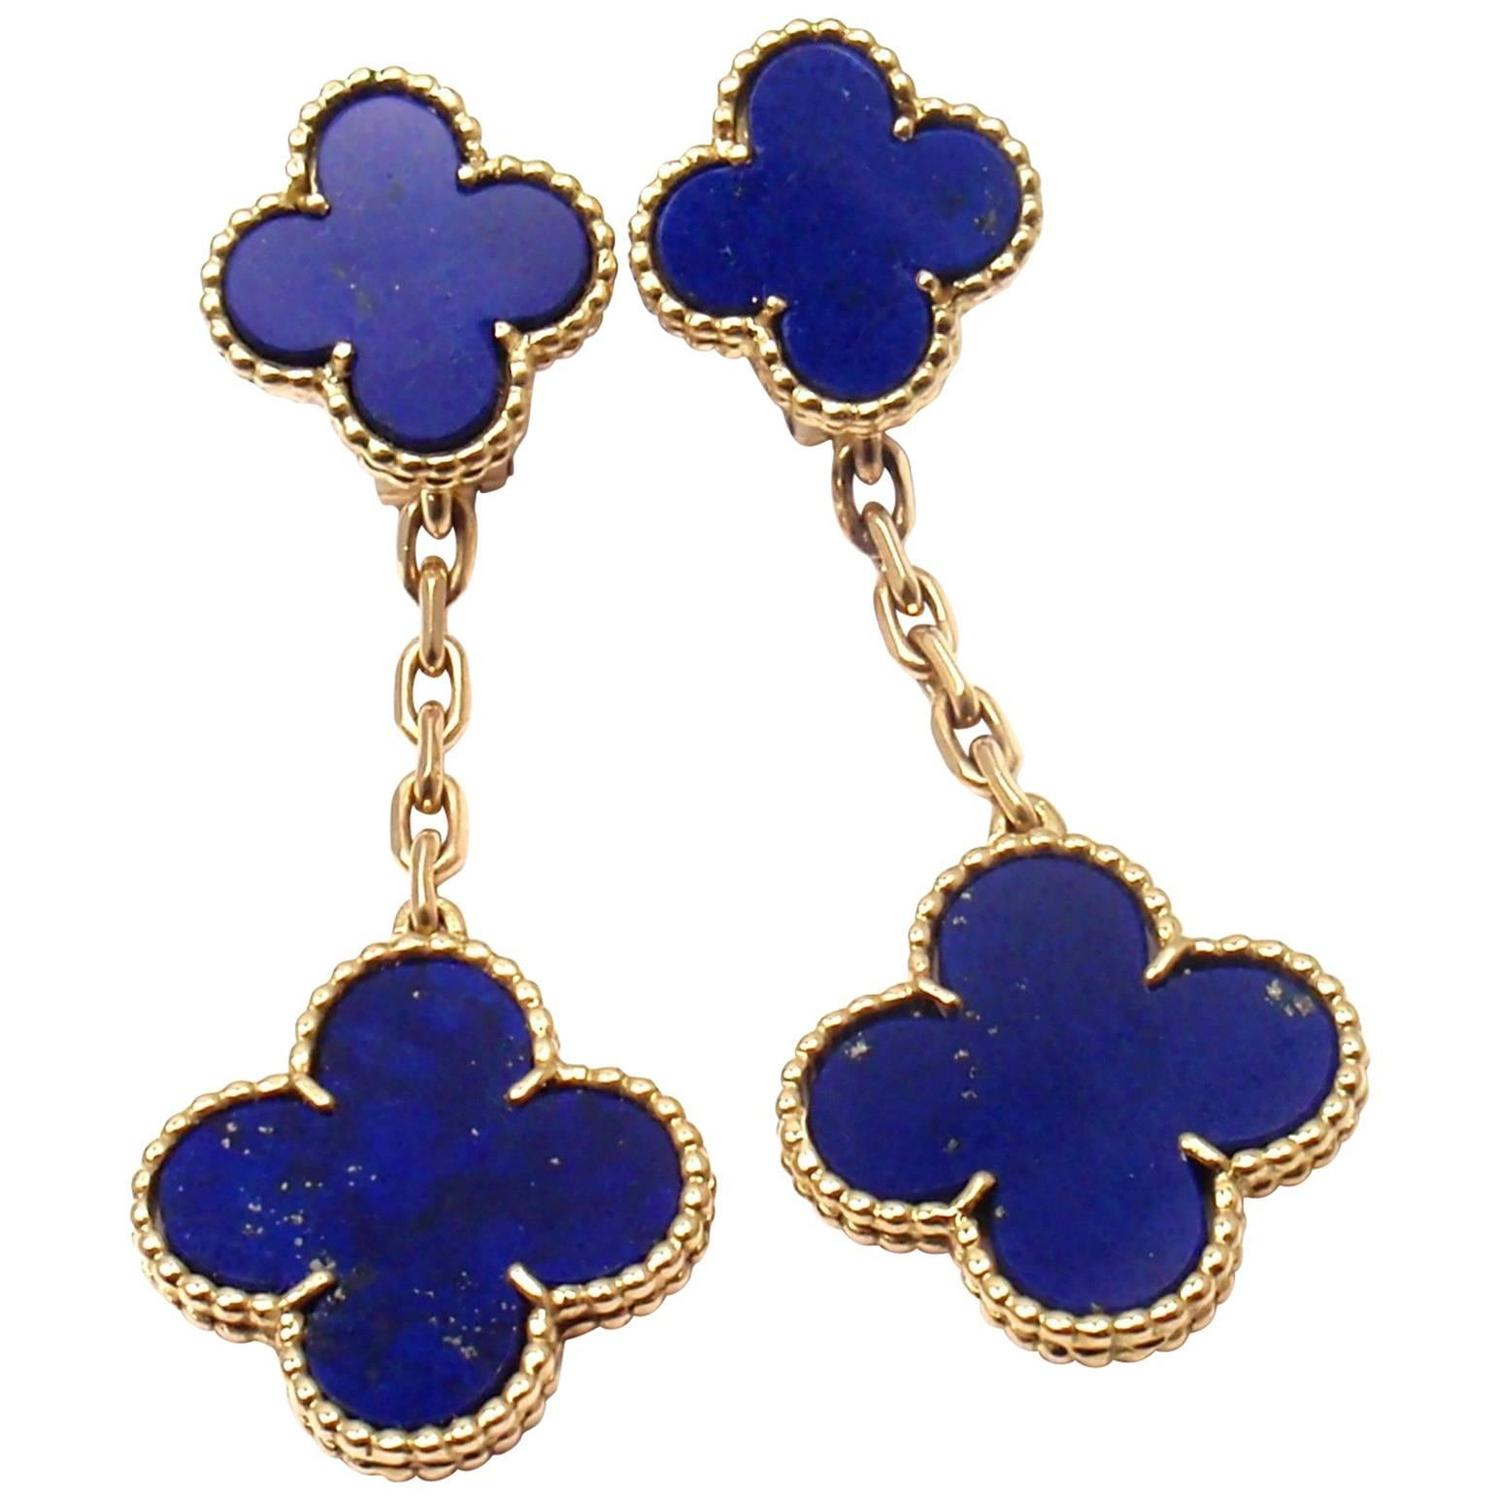 etsy meiq lapis il market earrings